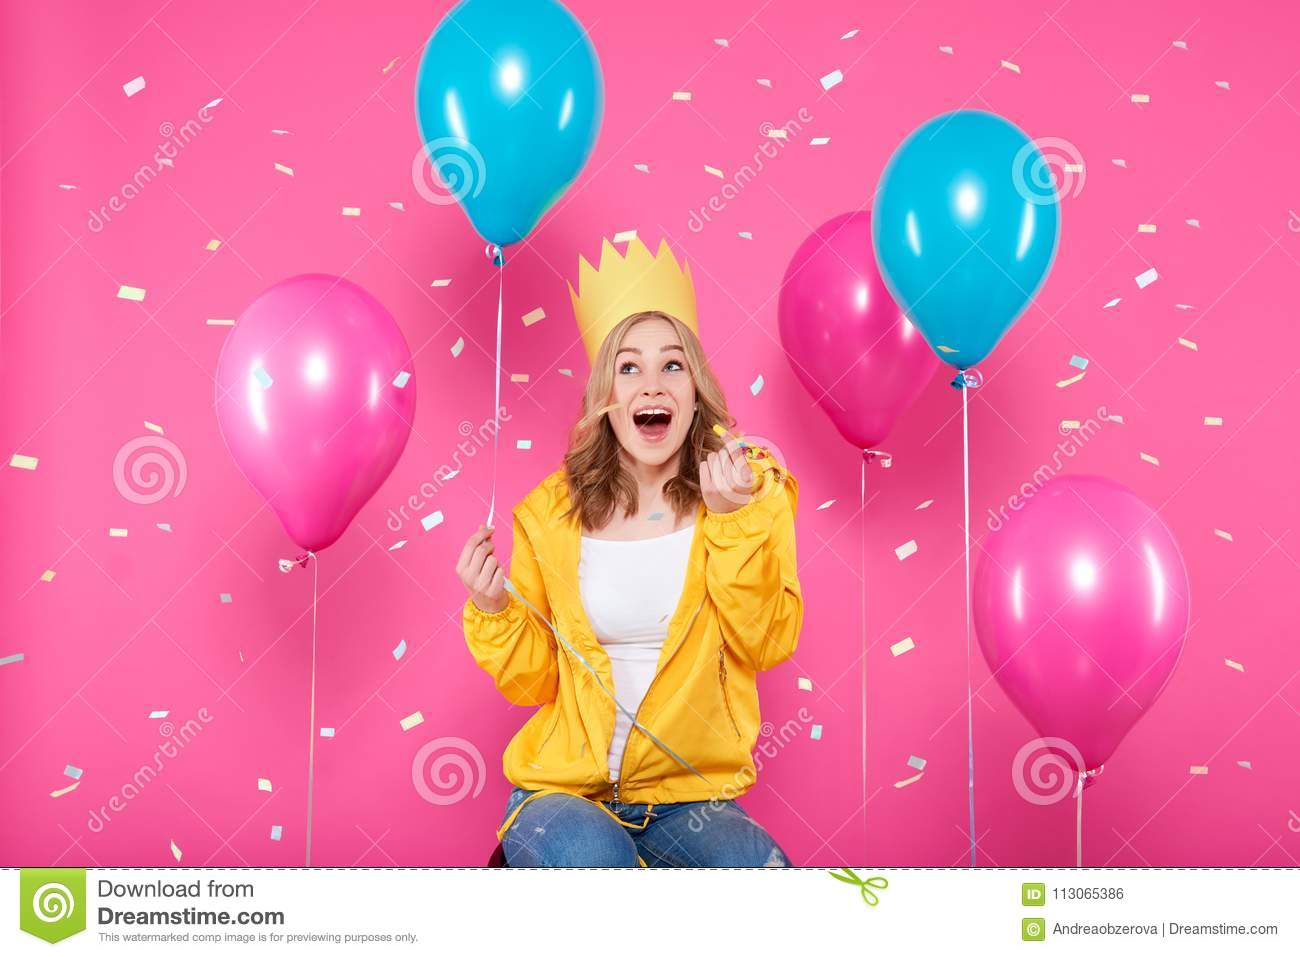 Funny girl in birthday hat, balloons and flying confetti on pastel pink background. Attractive teenager celebrating birthday.